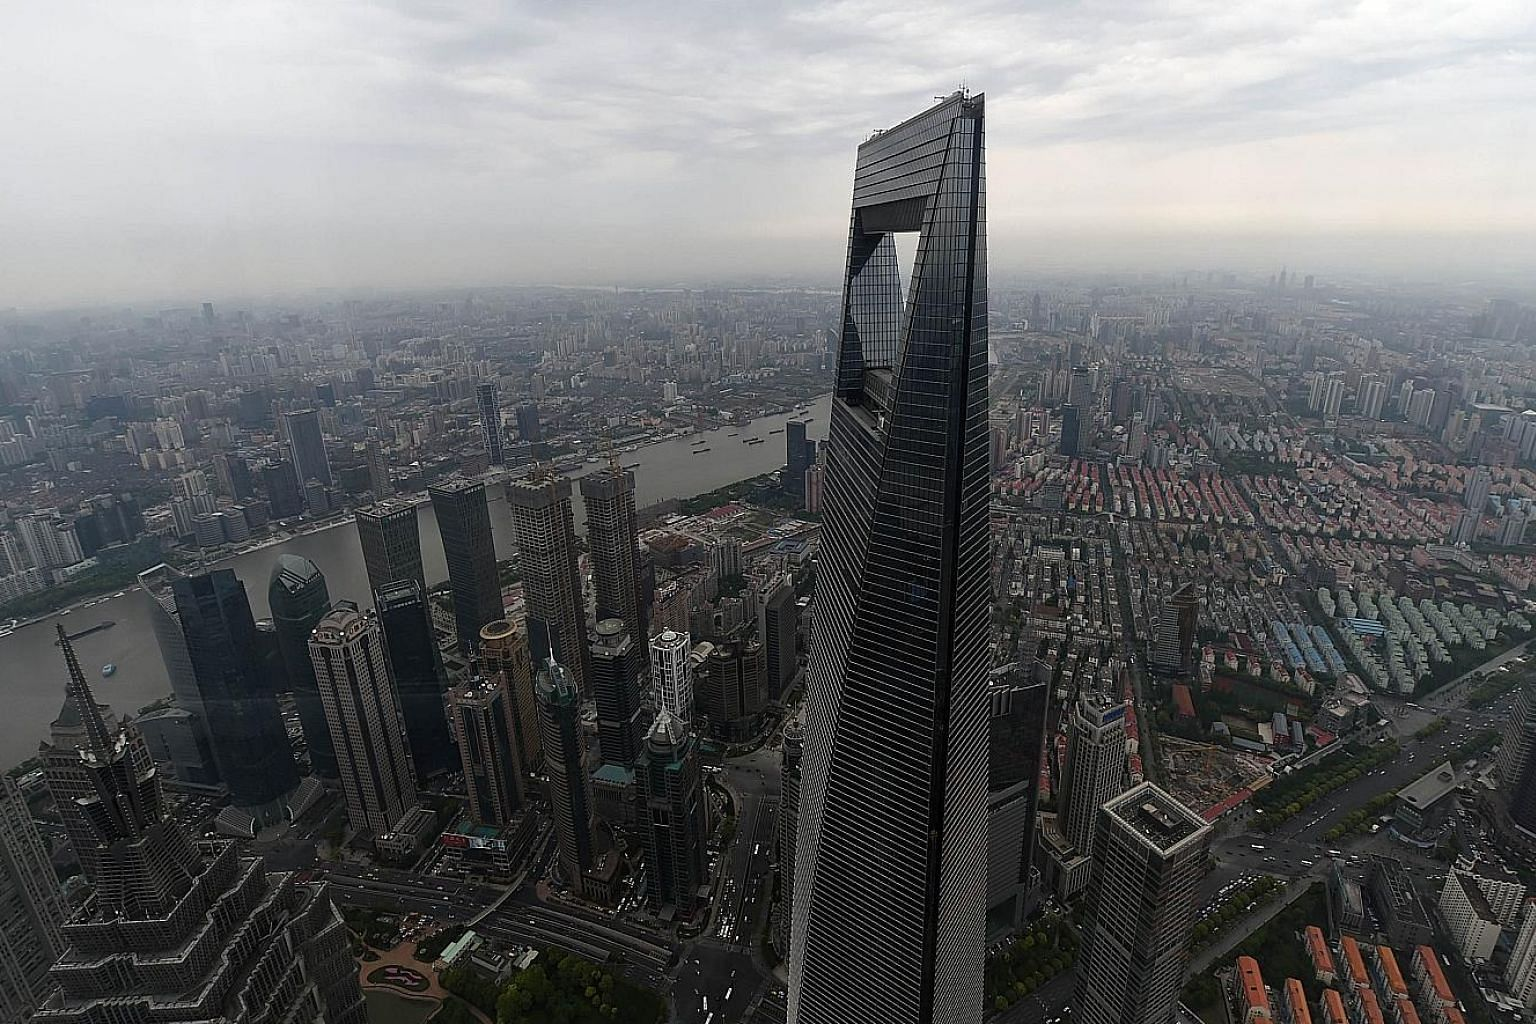 The Shanghai World Financial Centre dominating the skyline of China's financial hub. Chinese stock markets, which had risen as much as 110 per cent from last November to a peak in June, have tumbled more than 20 per cent since June 12.